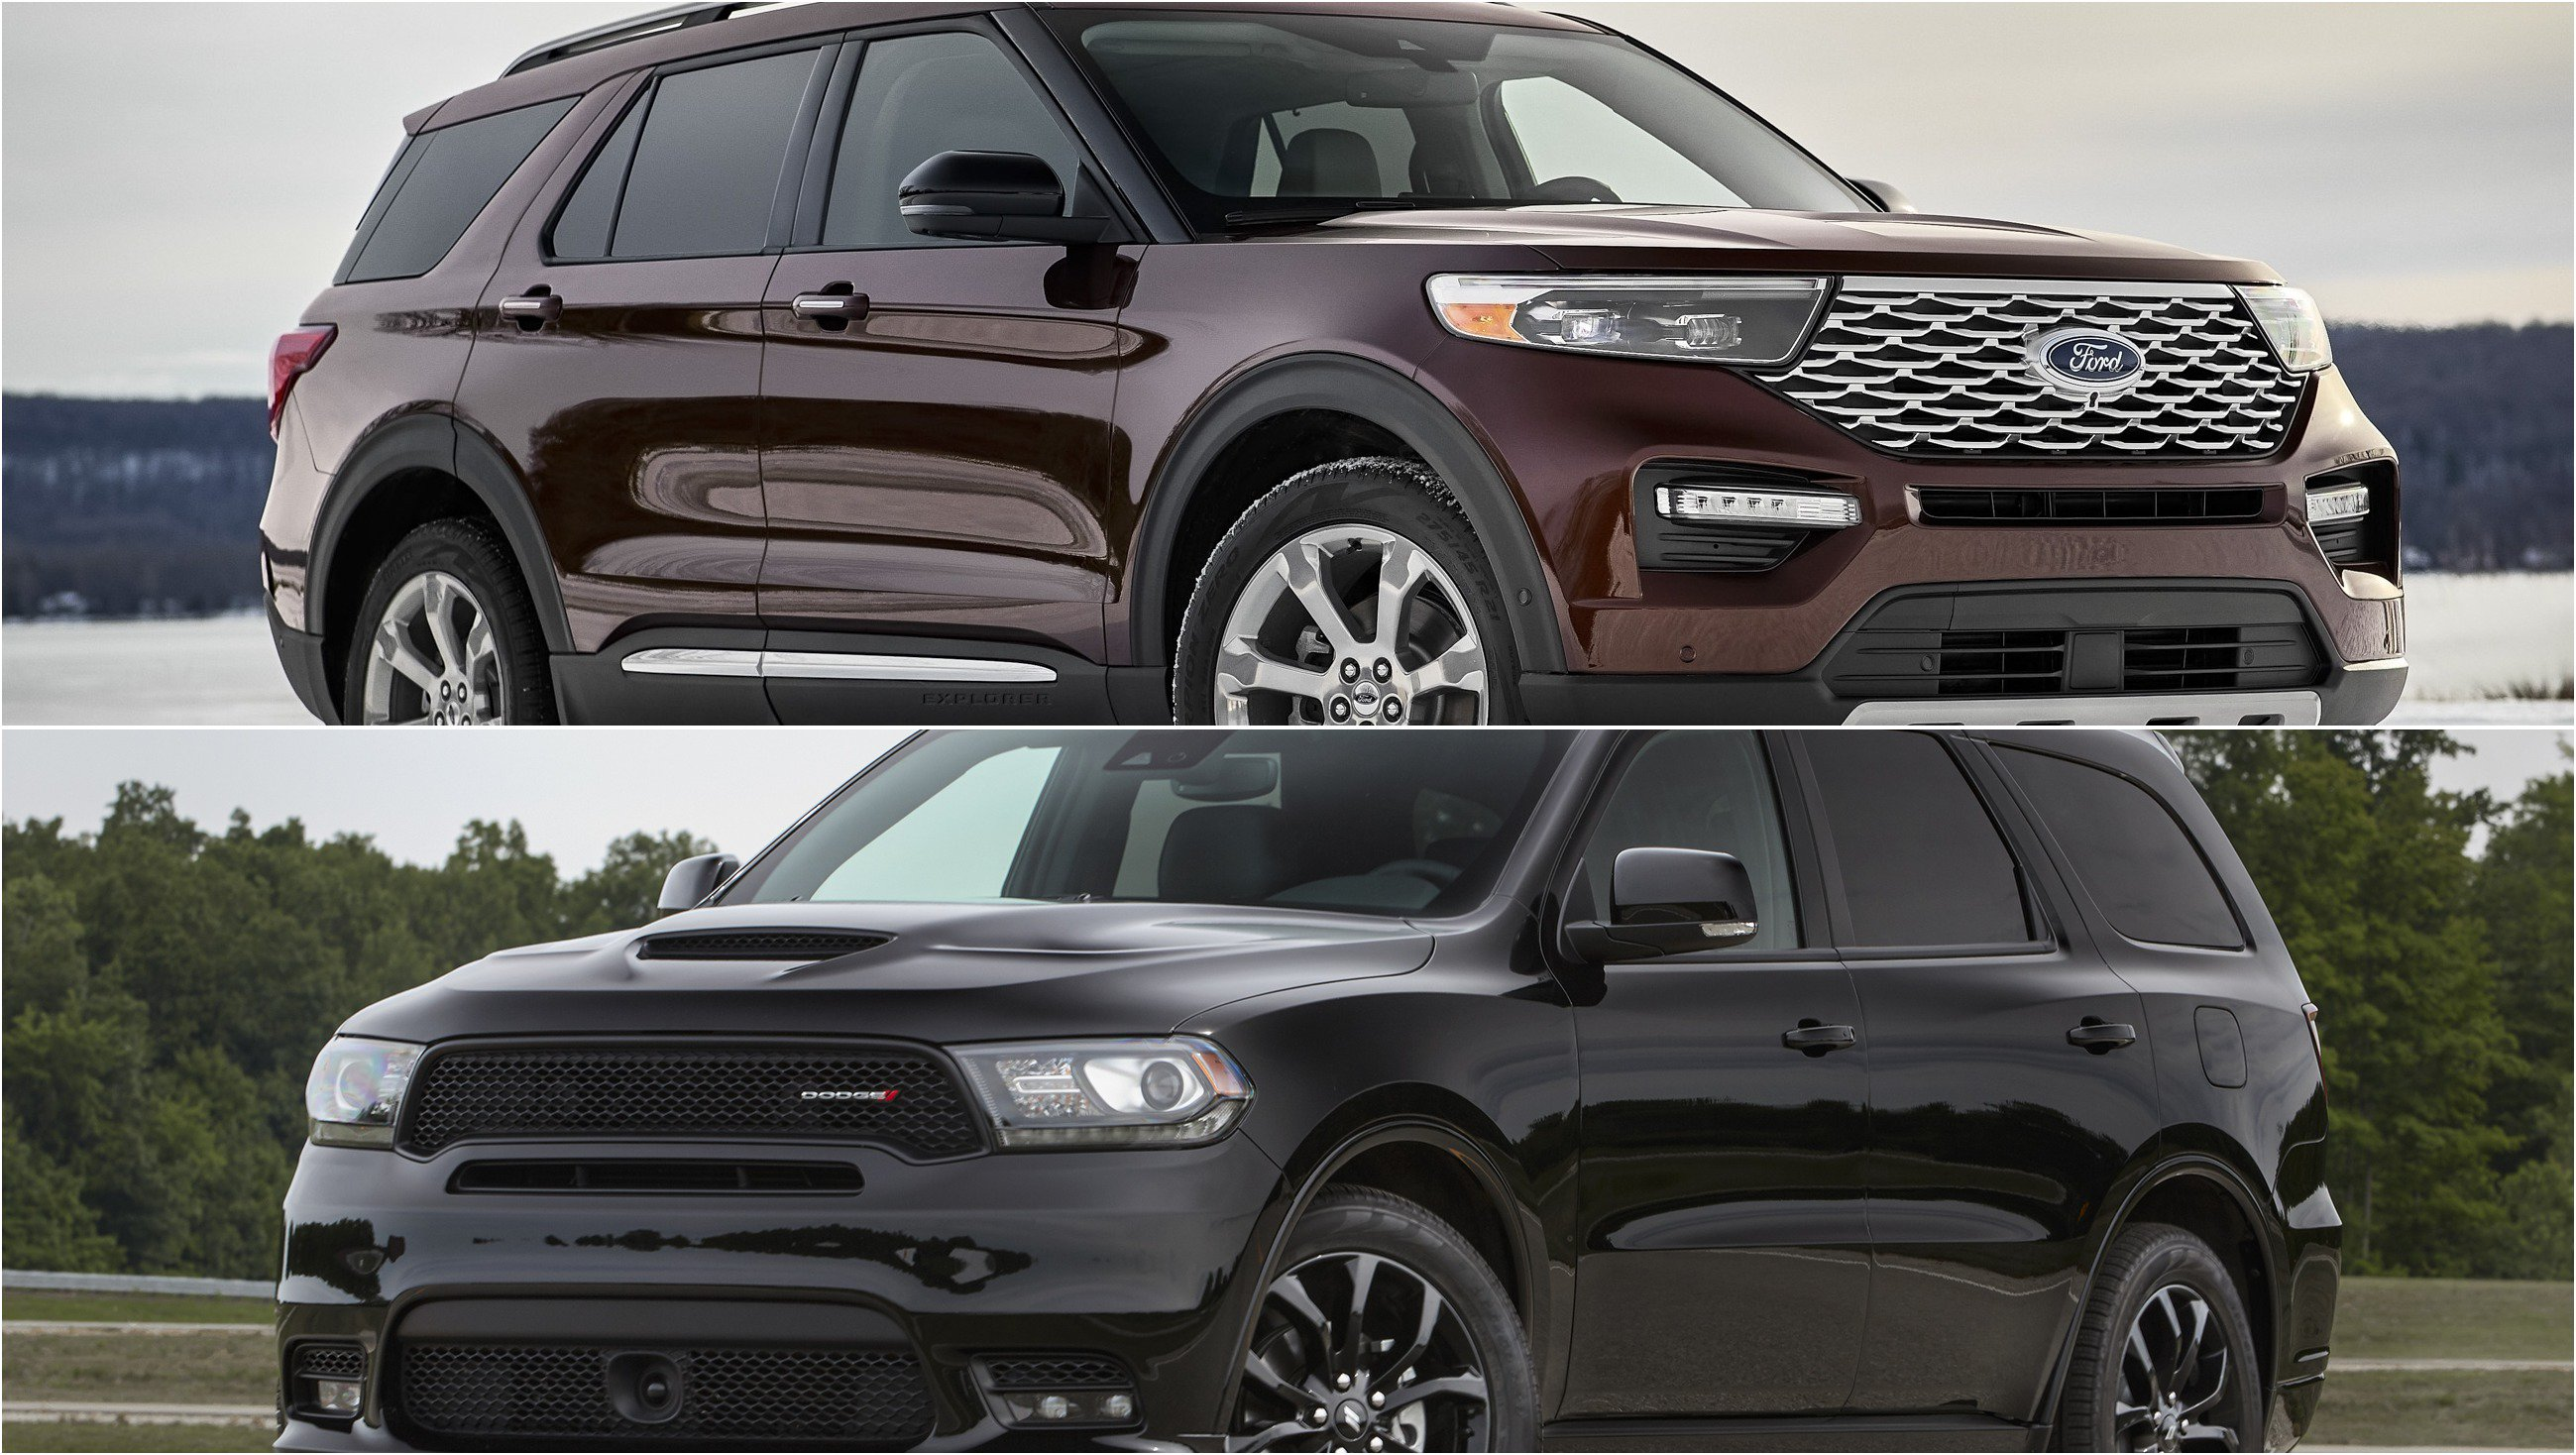 78 All New 2020 Dodge Durango Performance and New Engine